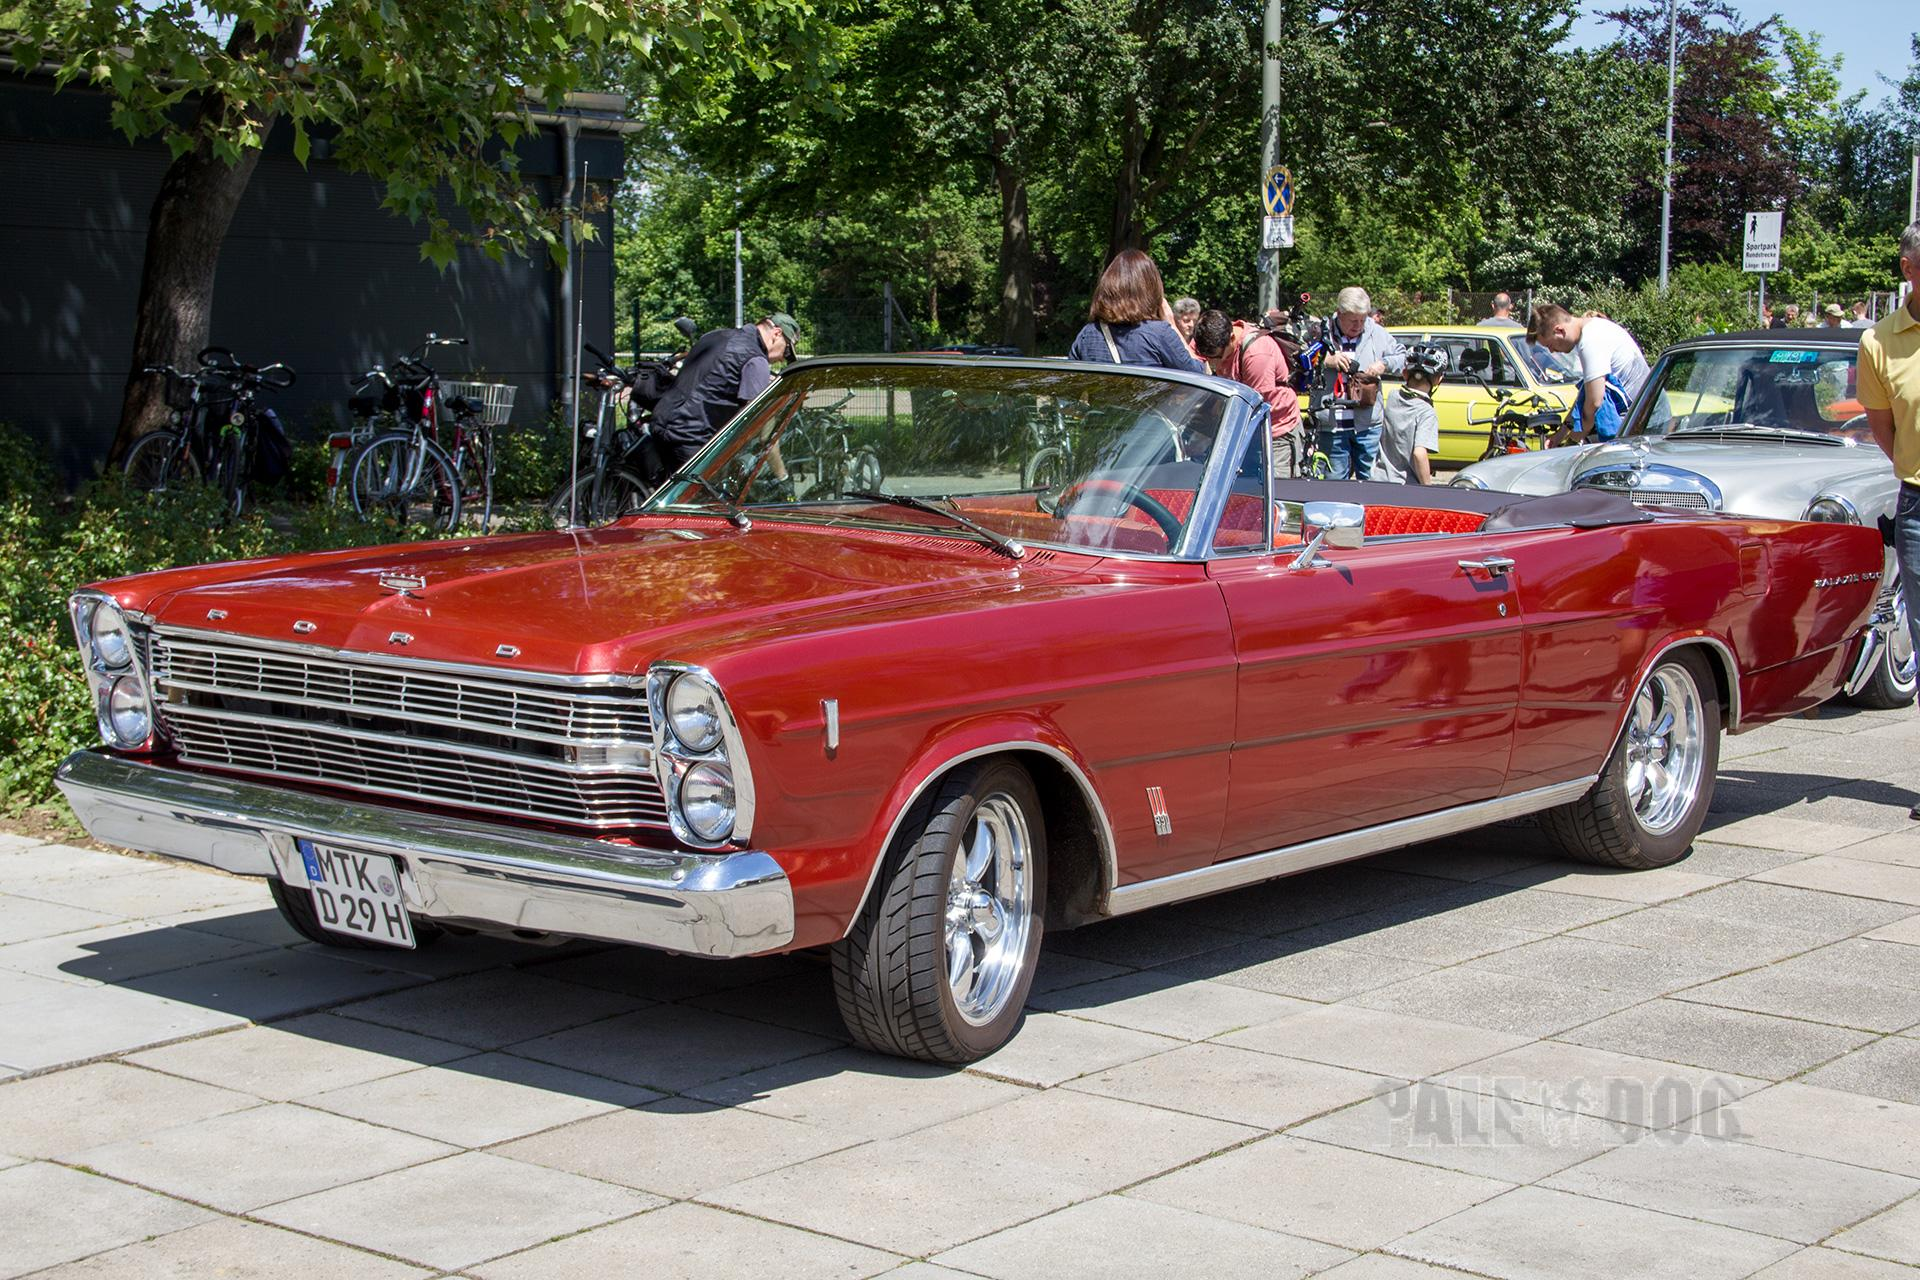 1966 Ford Galaxie 500 Convertible Front View 1960s Paledog Photo Collection